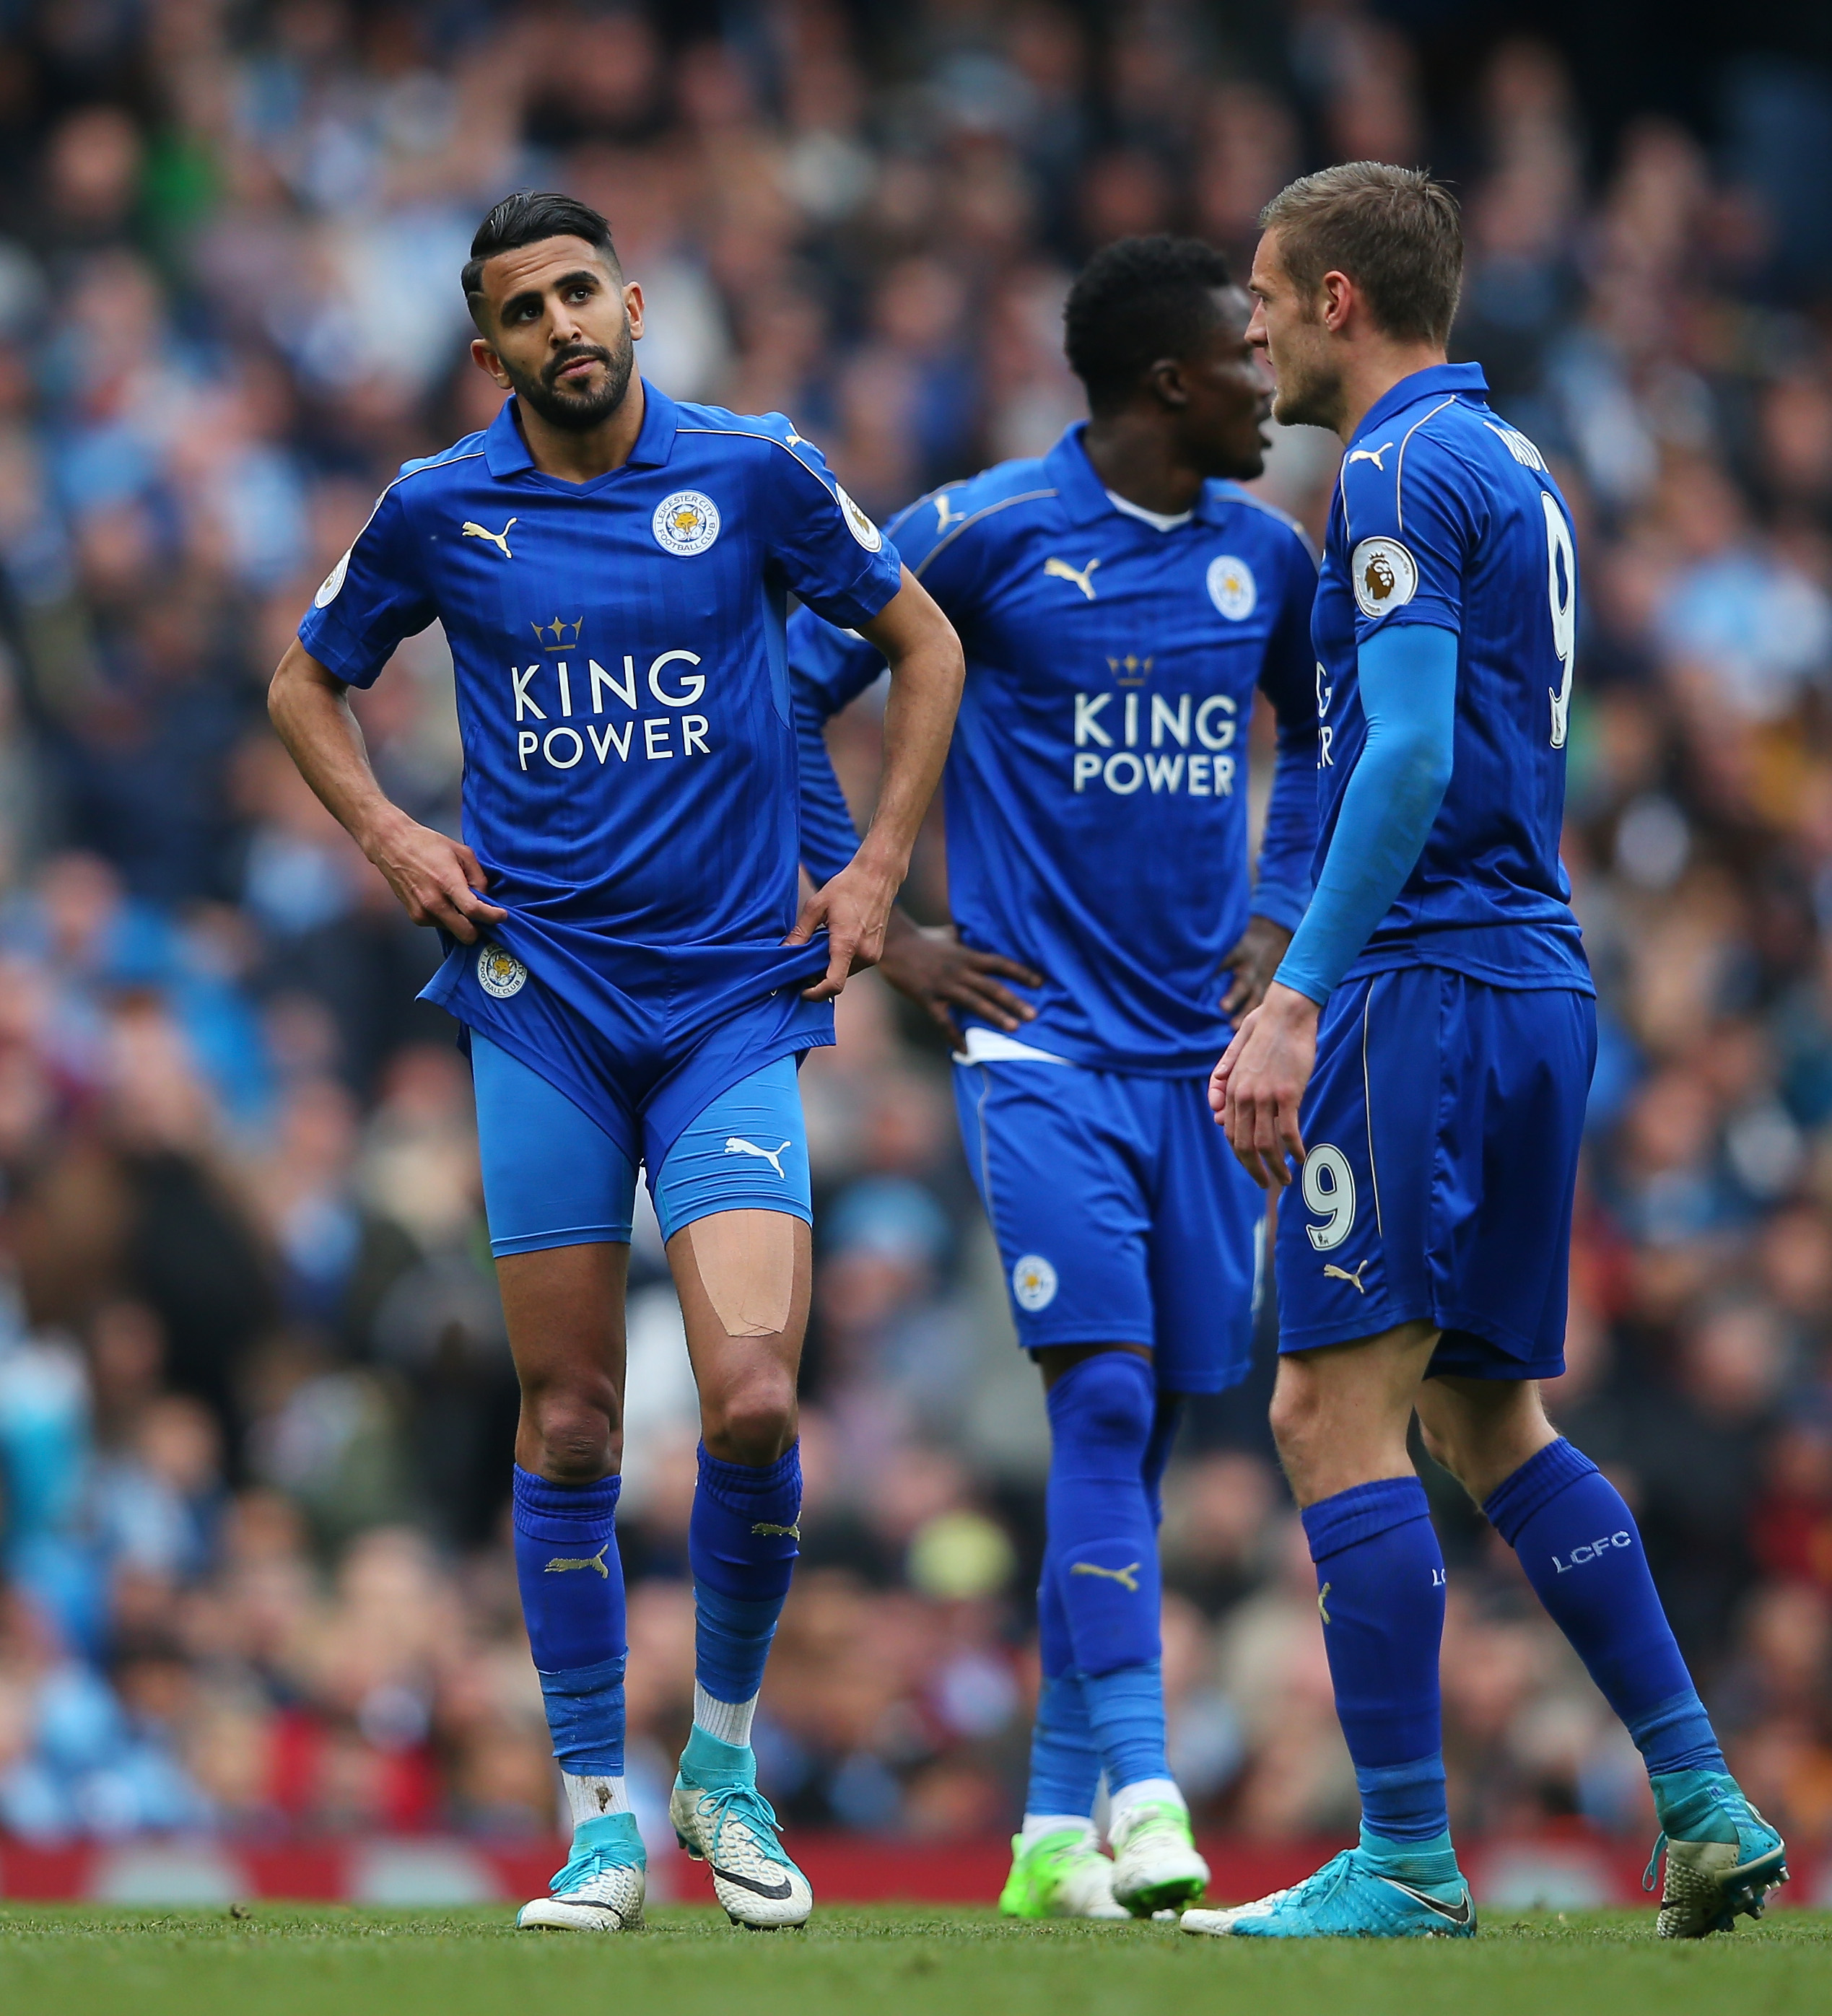 Mahrez will be dropped if he's not committed to Leicester: Shakespeare